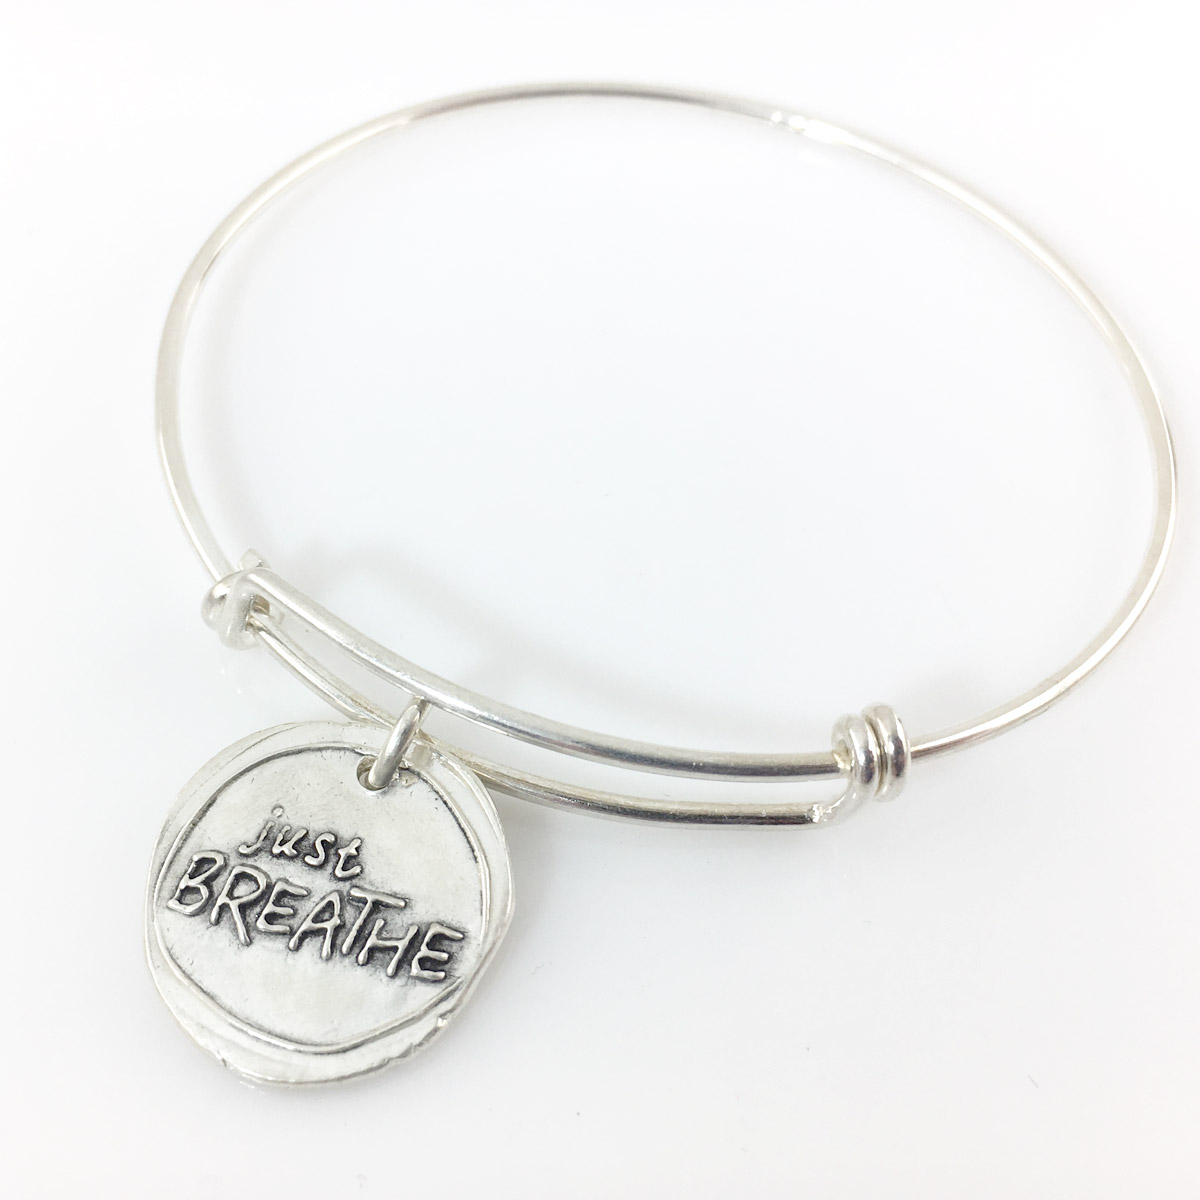 Just Breathe Wax Seal Inspired Bangle Bracelet